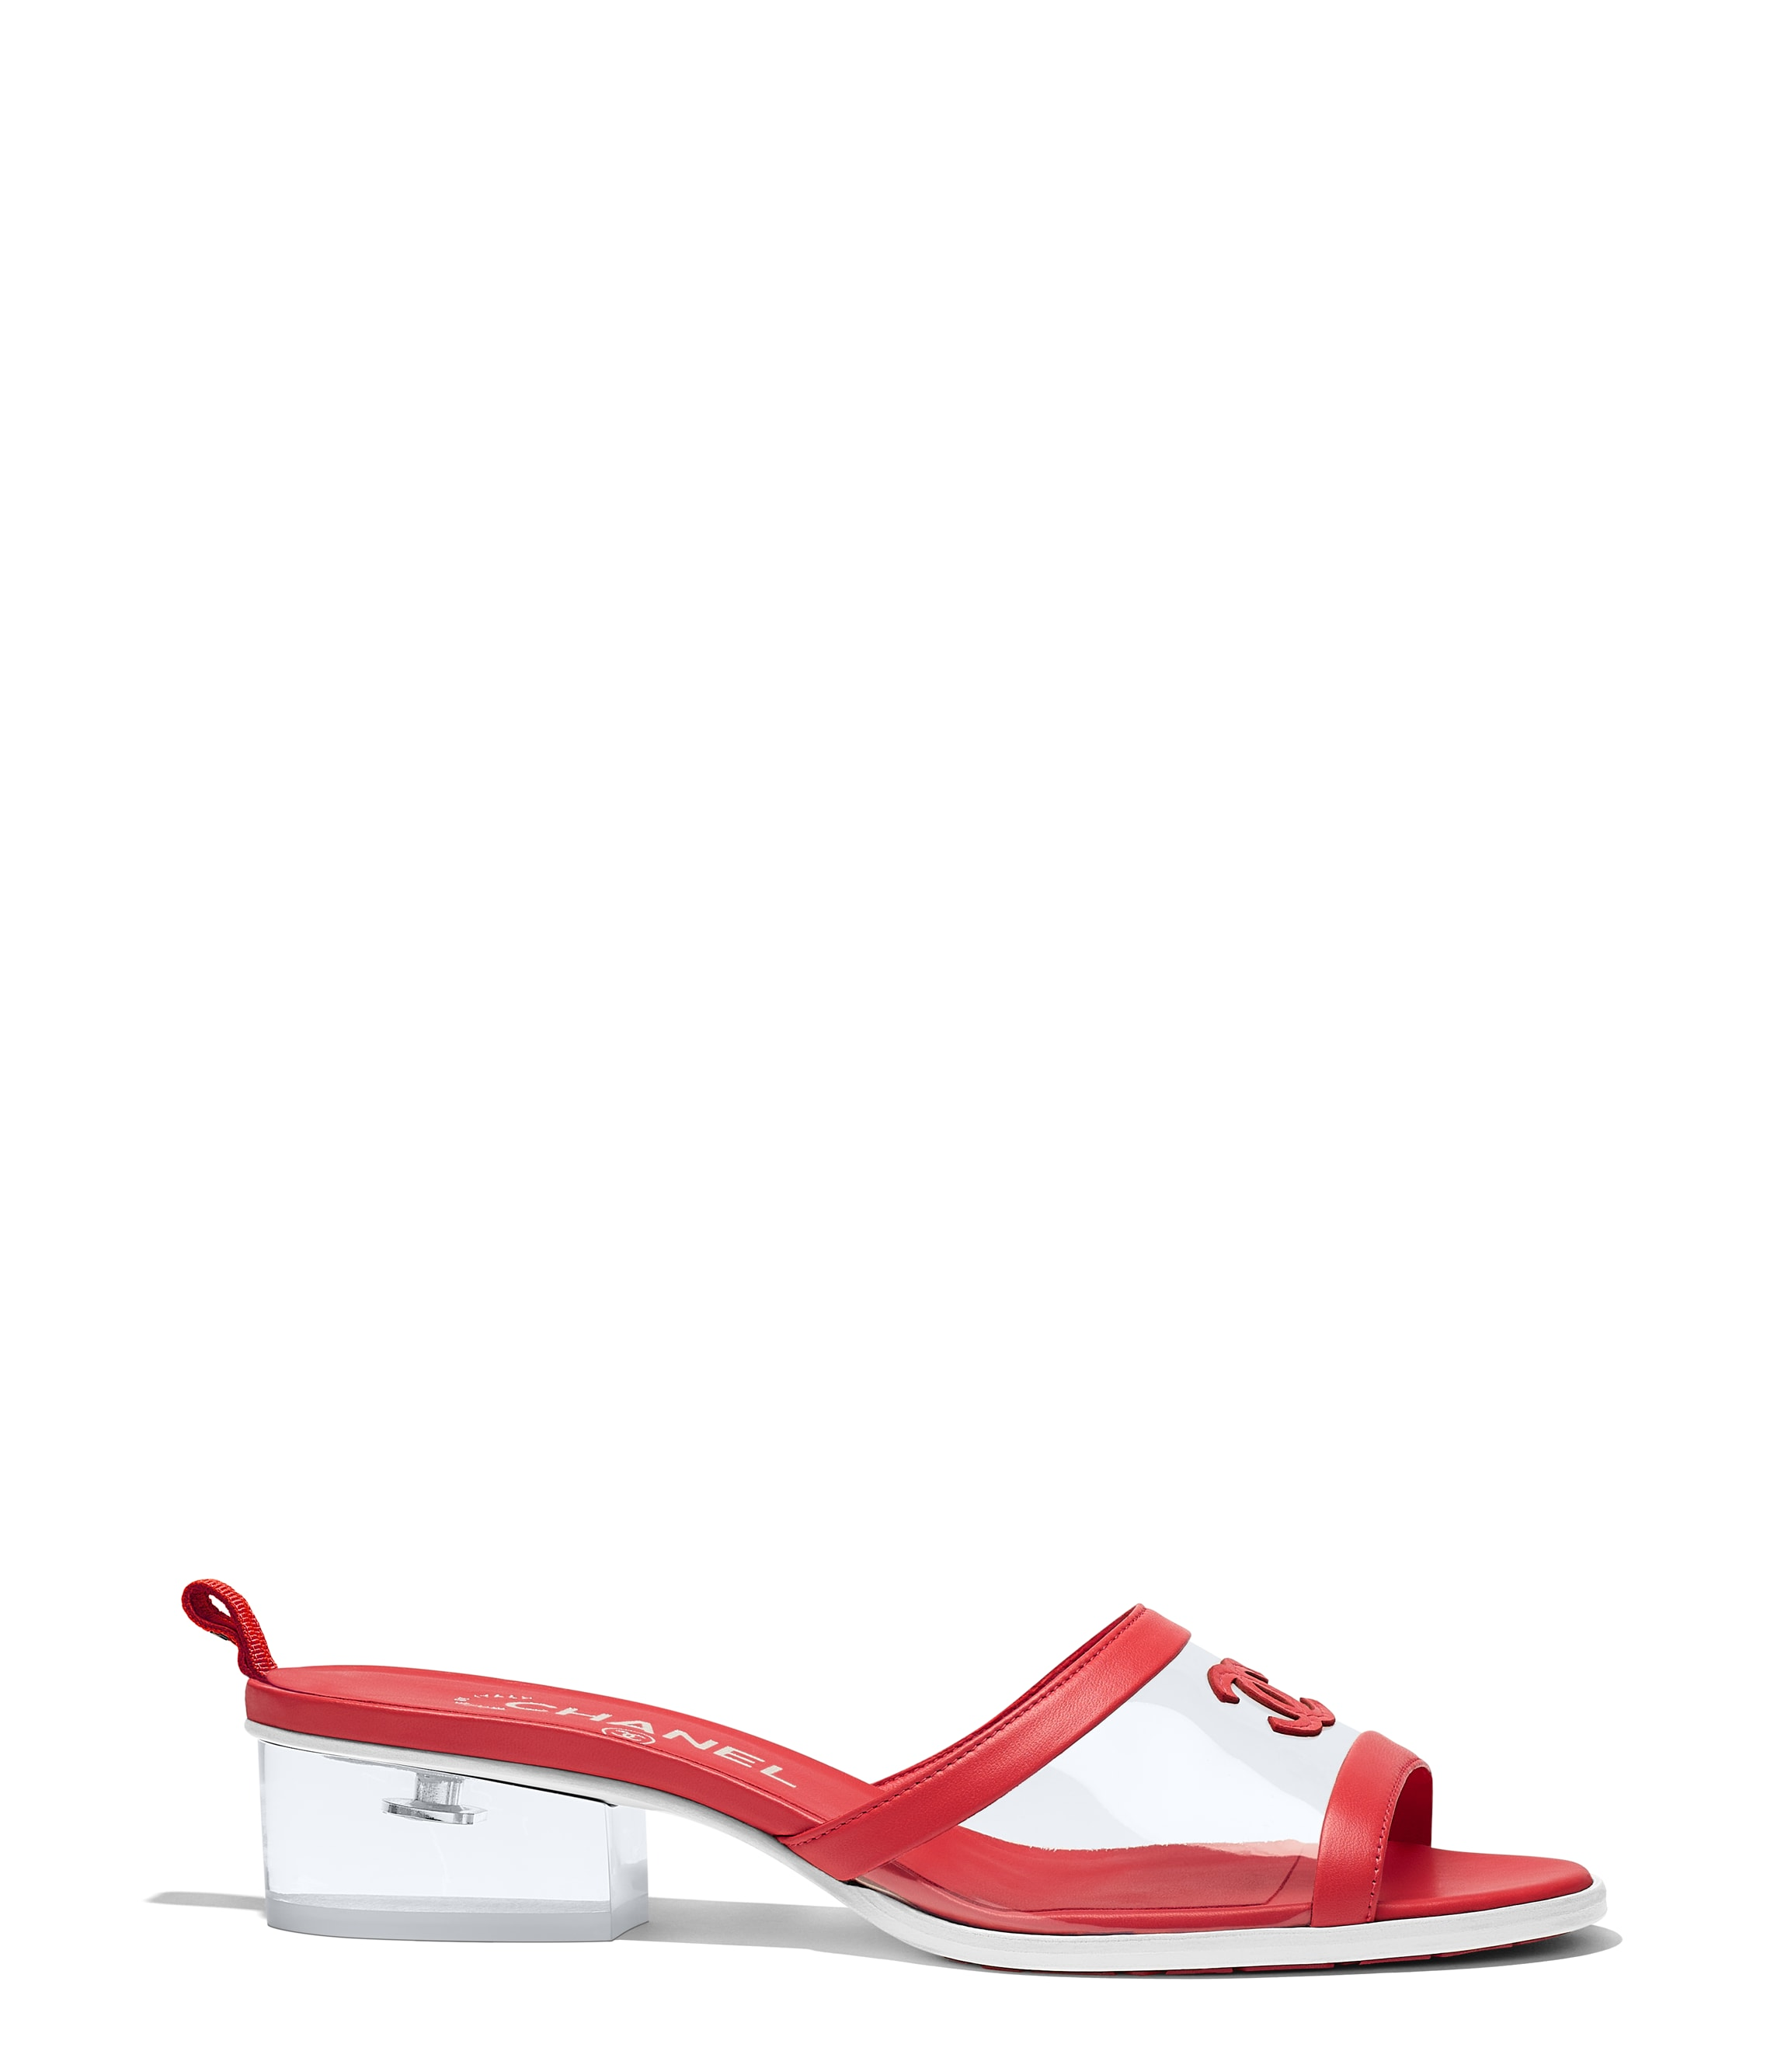 fe86a43891ec Sandals - Shoes - CHANEL